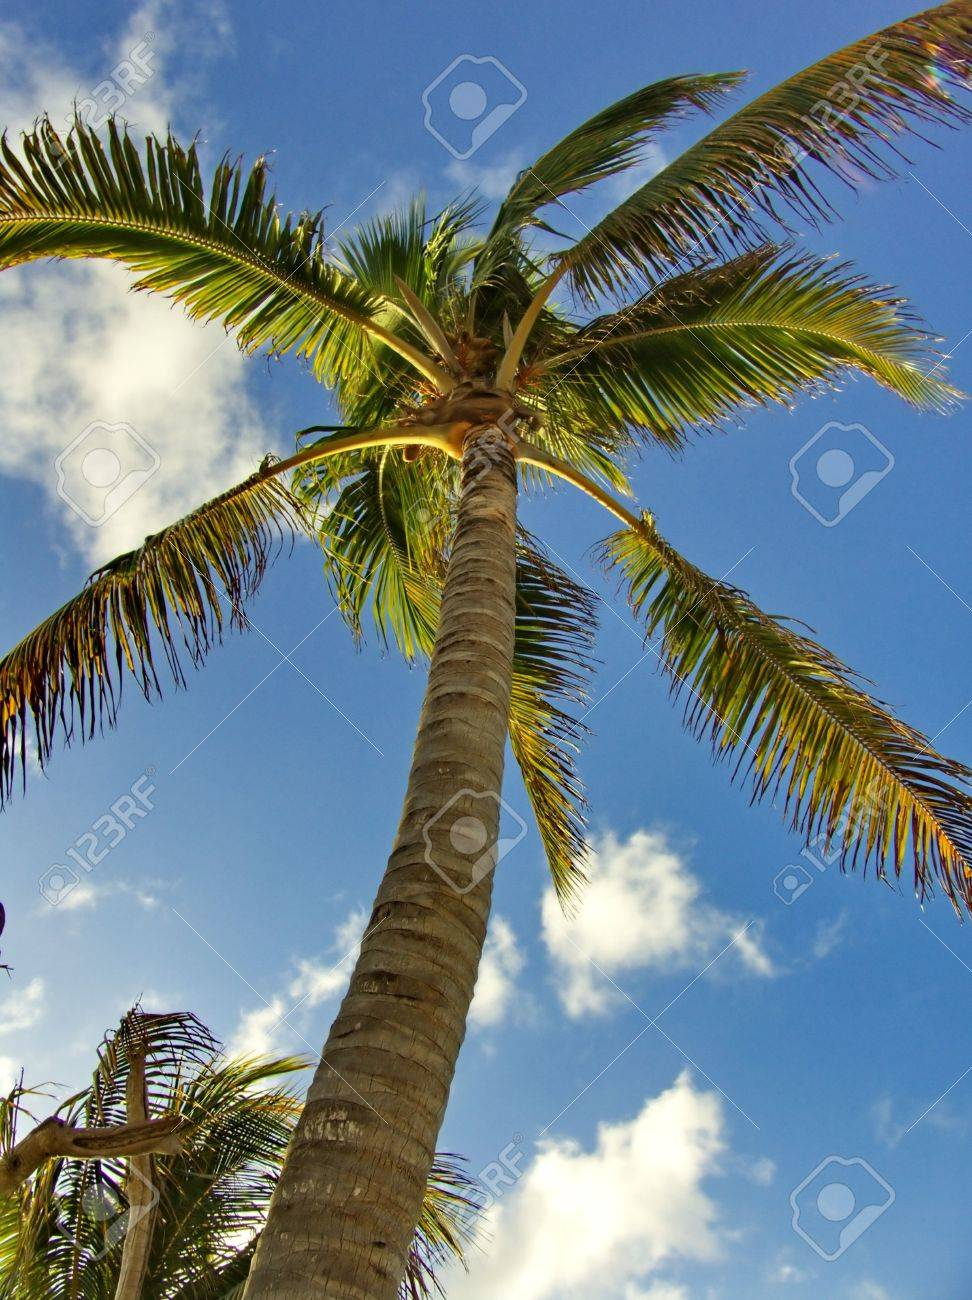 Coconut Palm Tree with Blue Sky Background - 2933276